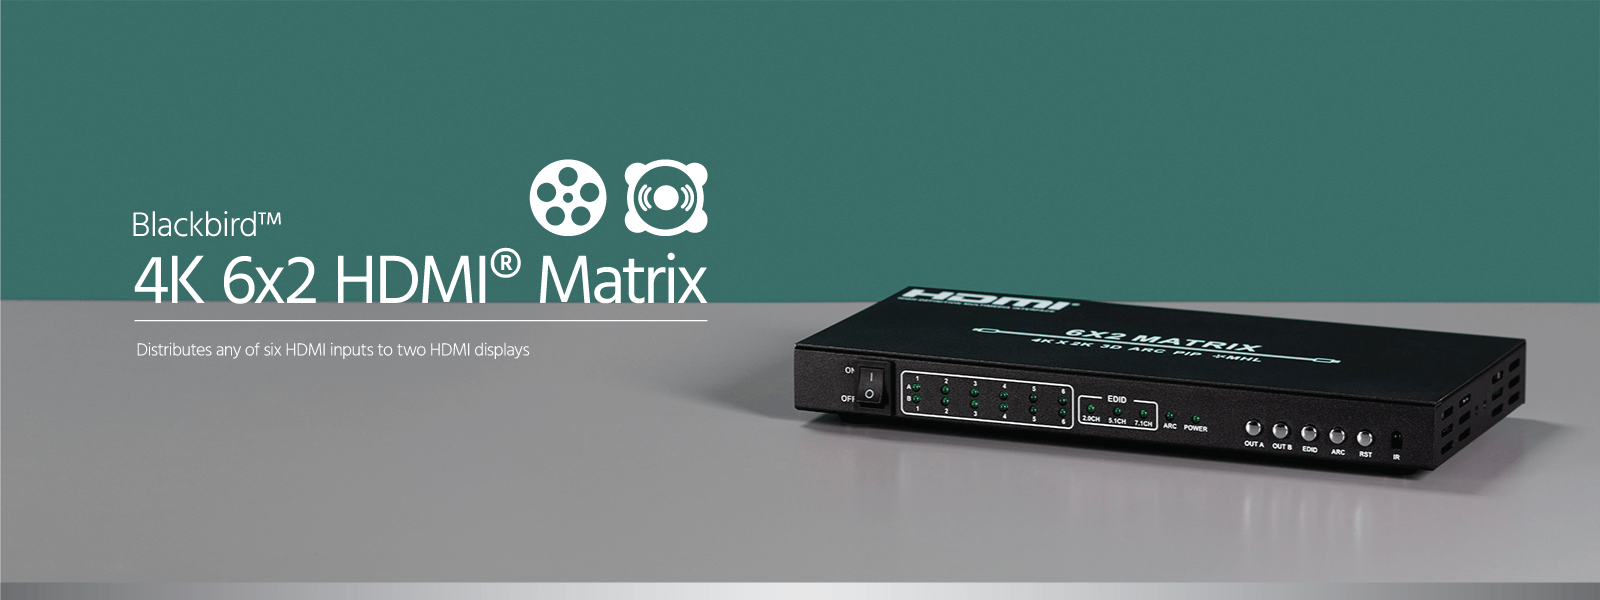 Blackbird 4K 6x2 HDMI Matrix